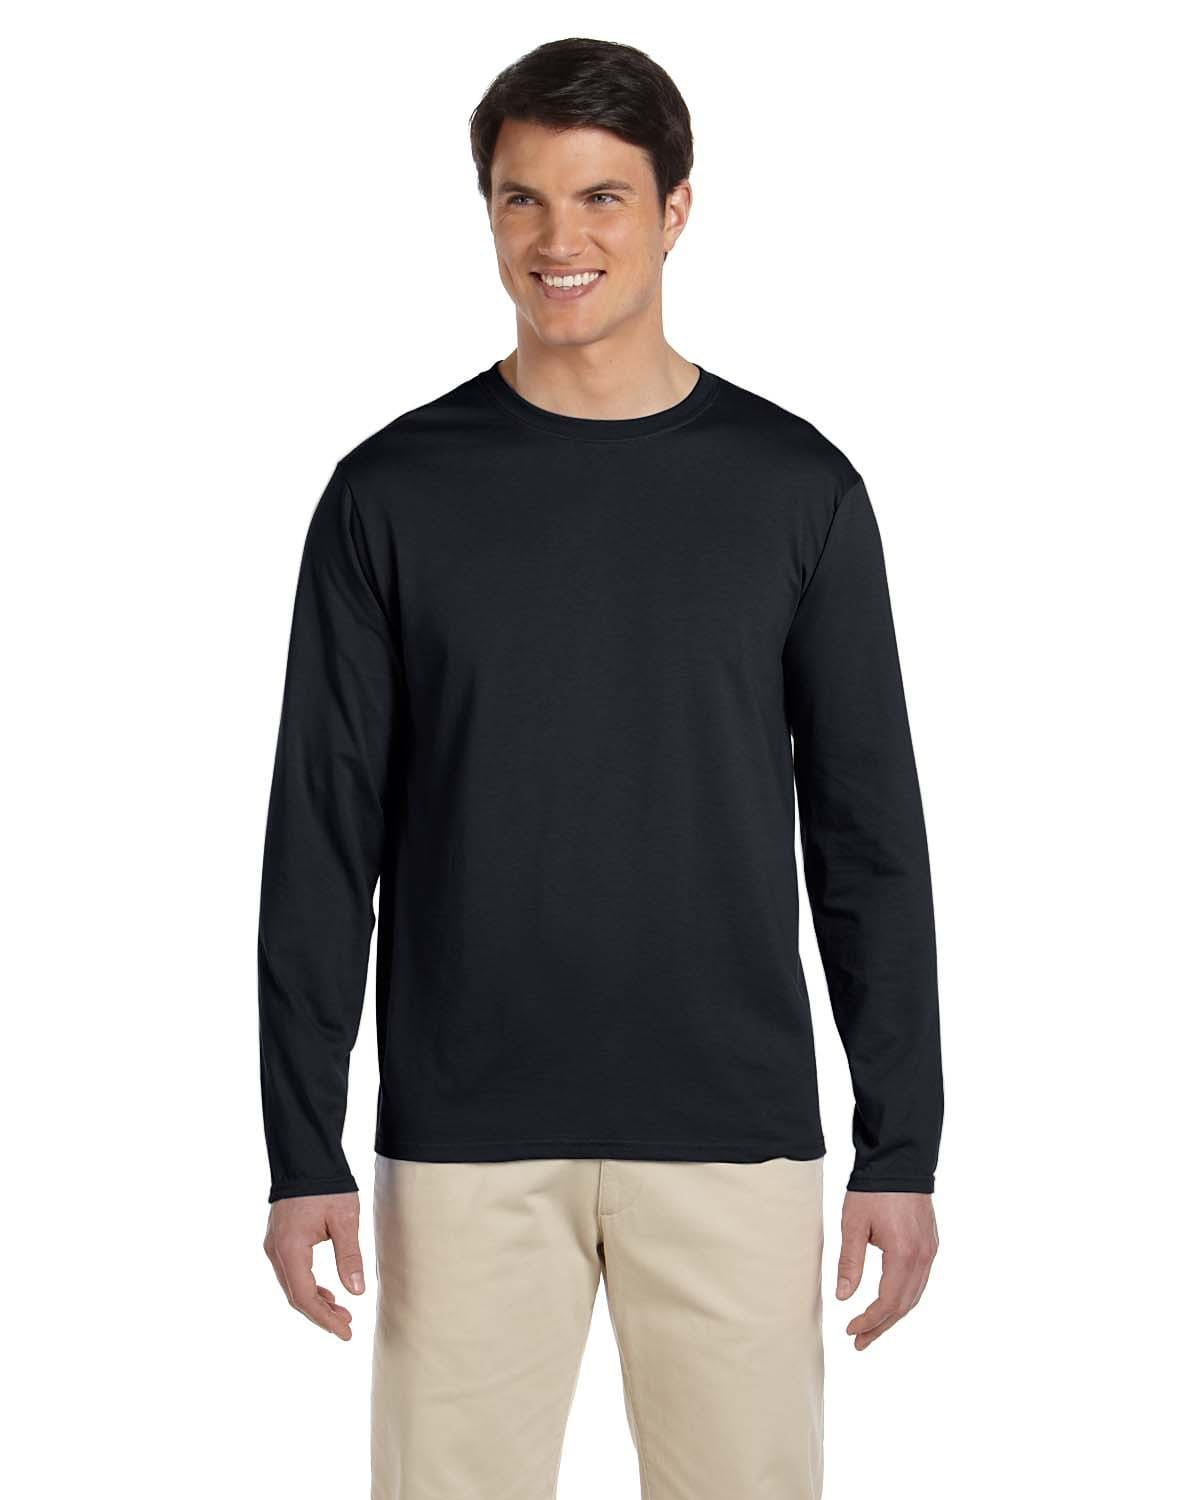 g644-adult-softstyle-4-5-oz-long-sleeve-t-shirt-Small-BLACK-Oasispromos